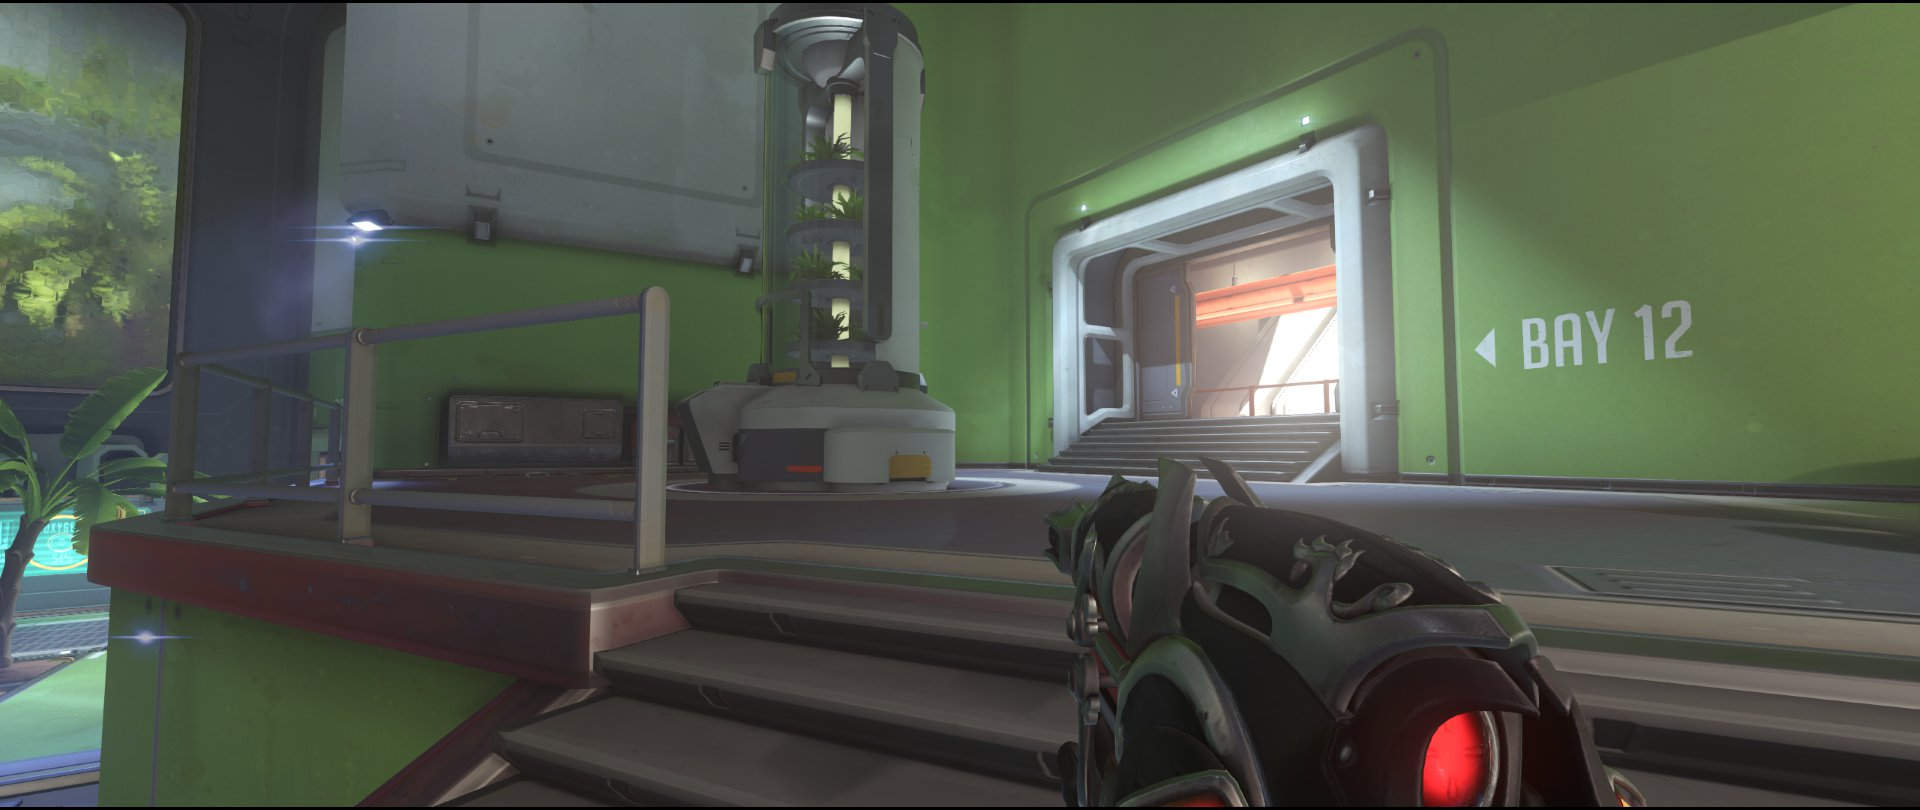 Hothouse+to+balcony+attack+sniping+spot+Widowmaker+Horizon+Lunar+Colony+Overwatch